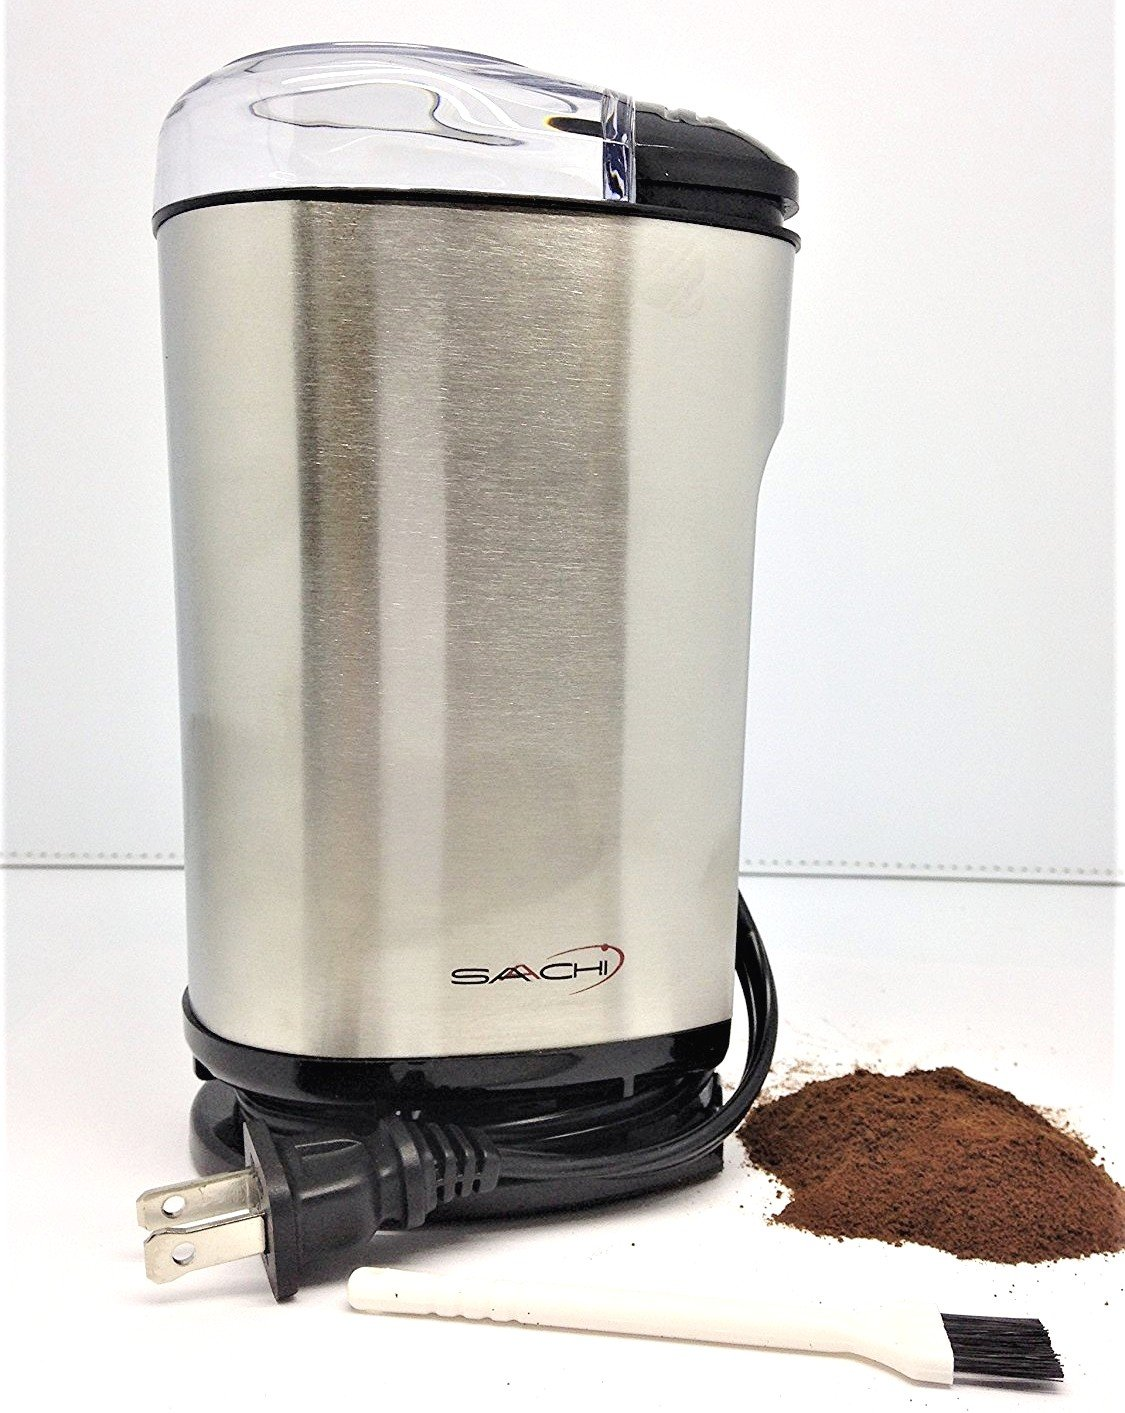 Saachi Electric Powerful Coffee and Spice Grinder, Full Stainless Steel Rust-free Body and Blades